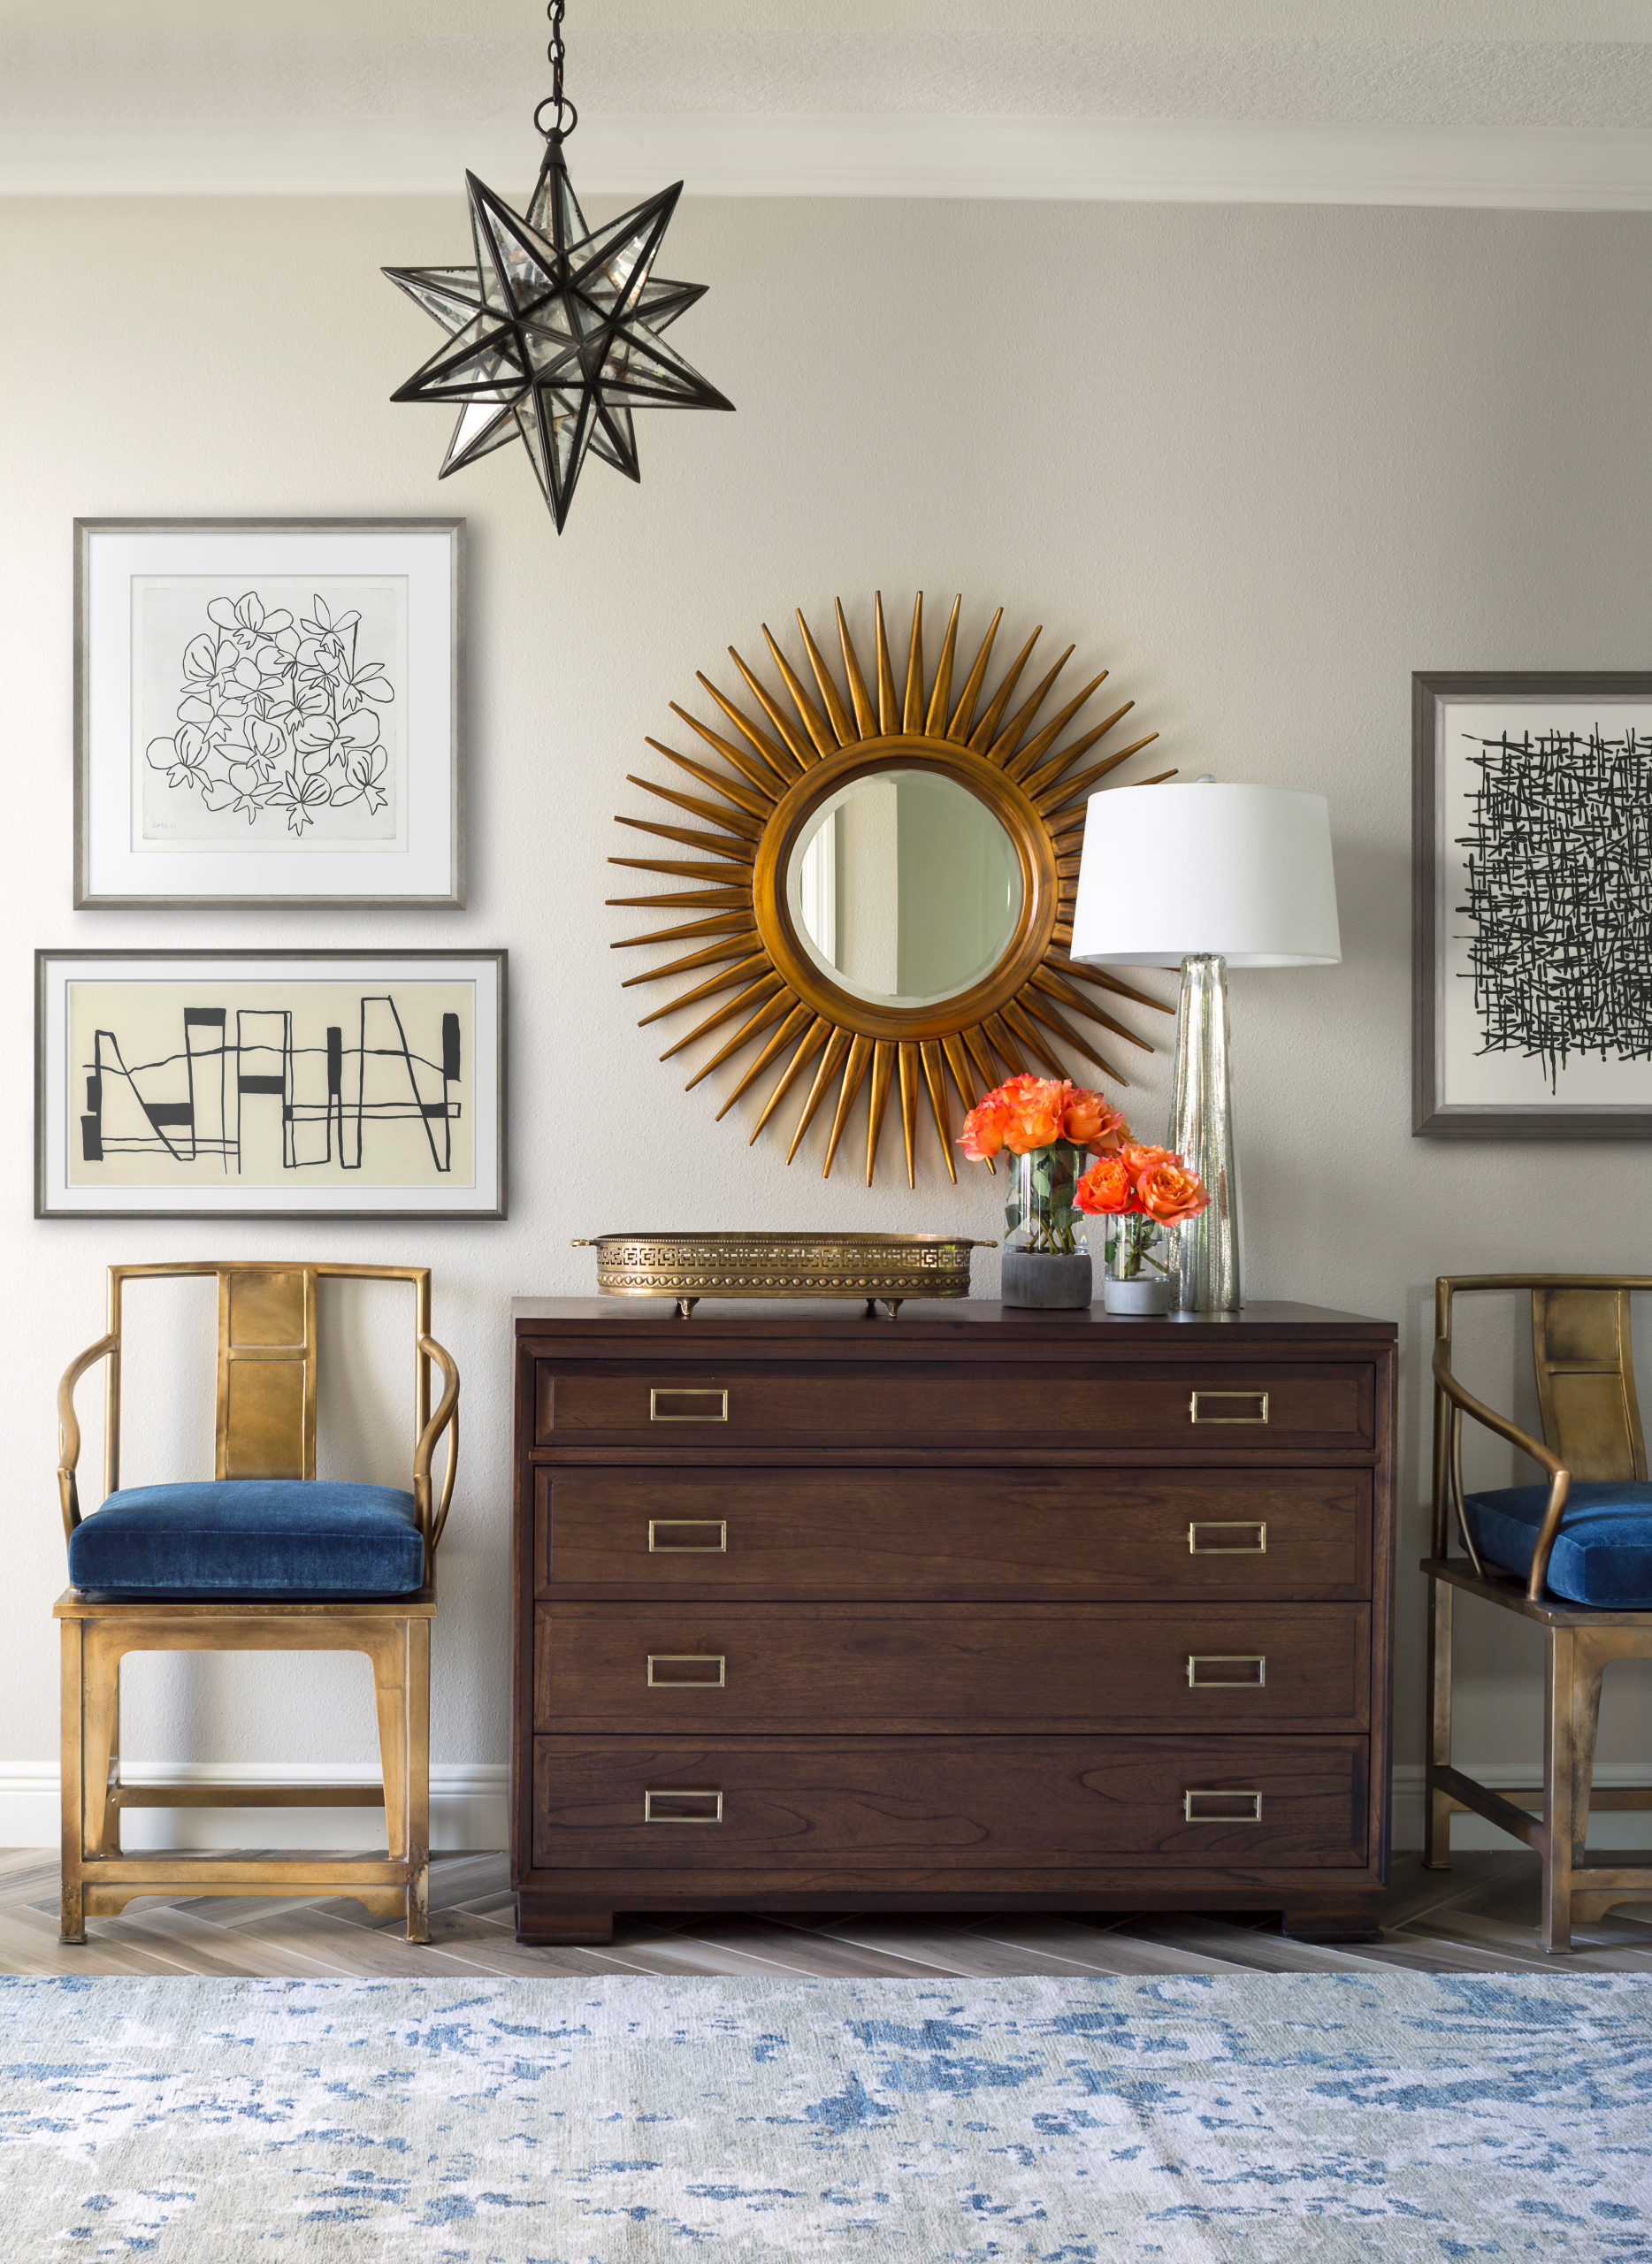 75 Beautiful Entryway Pictures Ideas December 2020 Houzz